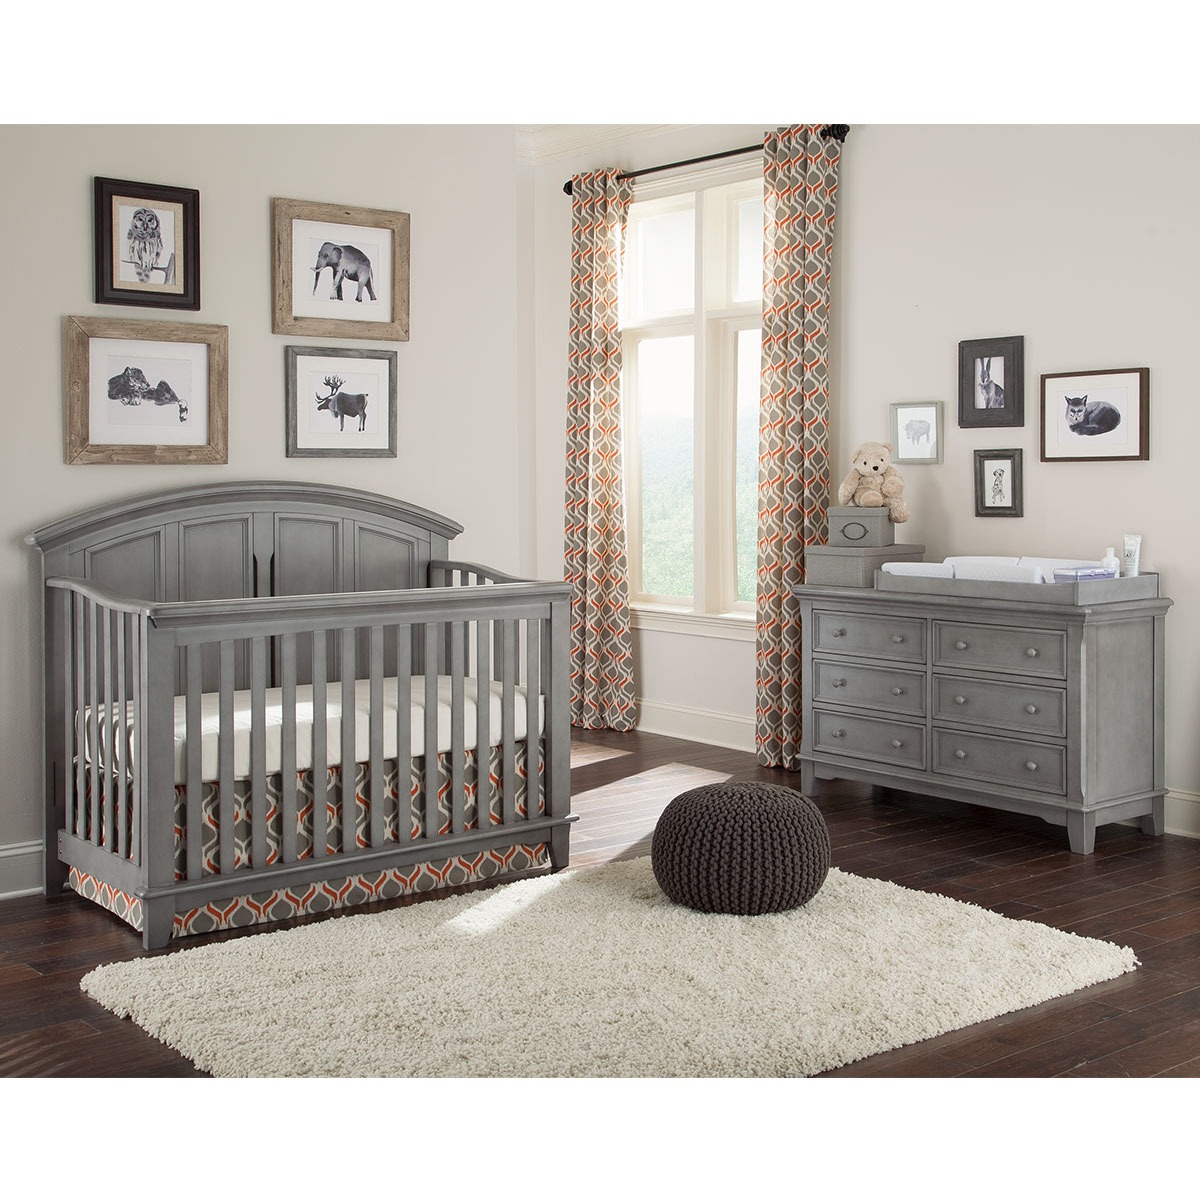 design ch westwood chest nursery crib furniture baby and cribs blk ridge cr convertible black pineridge pine